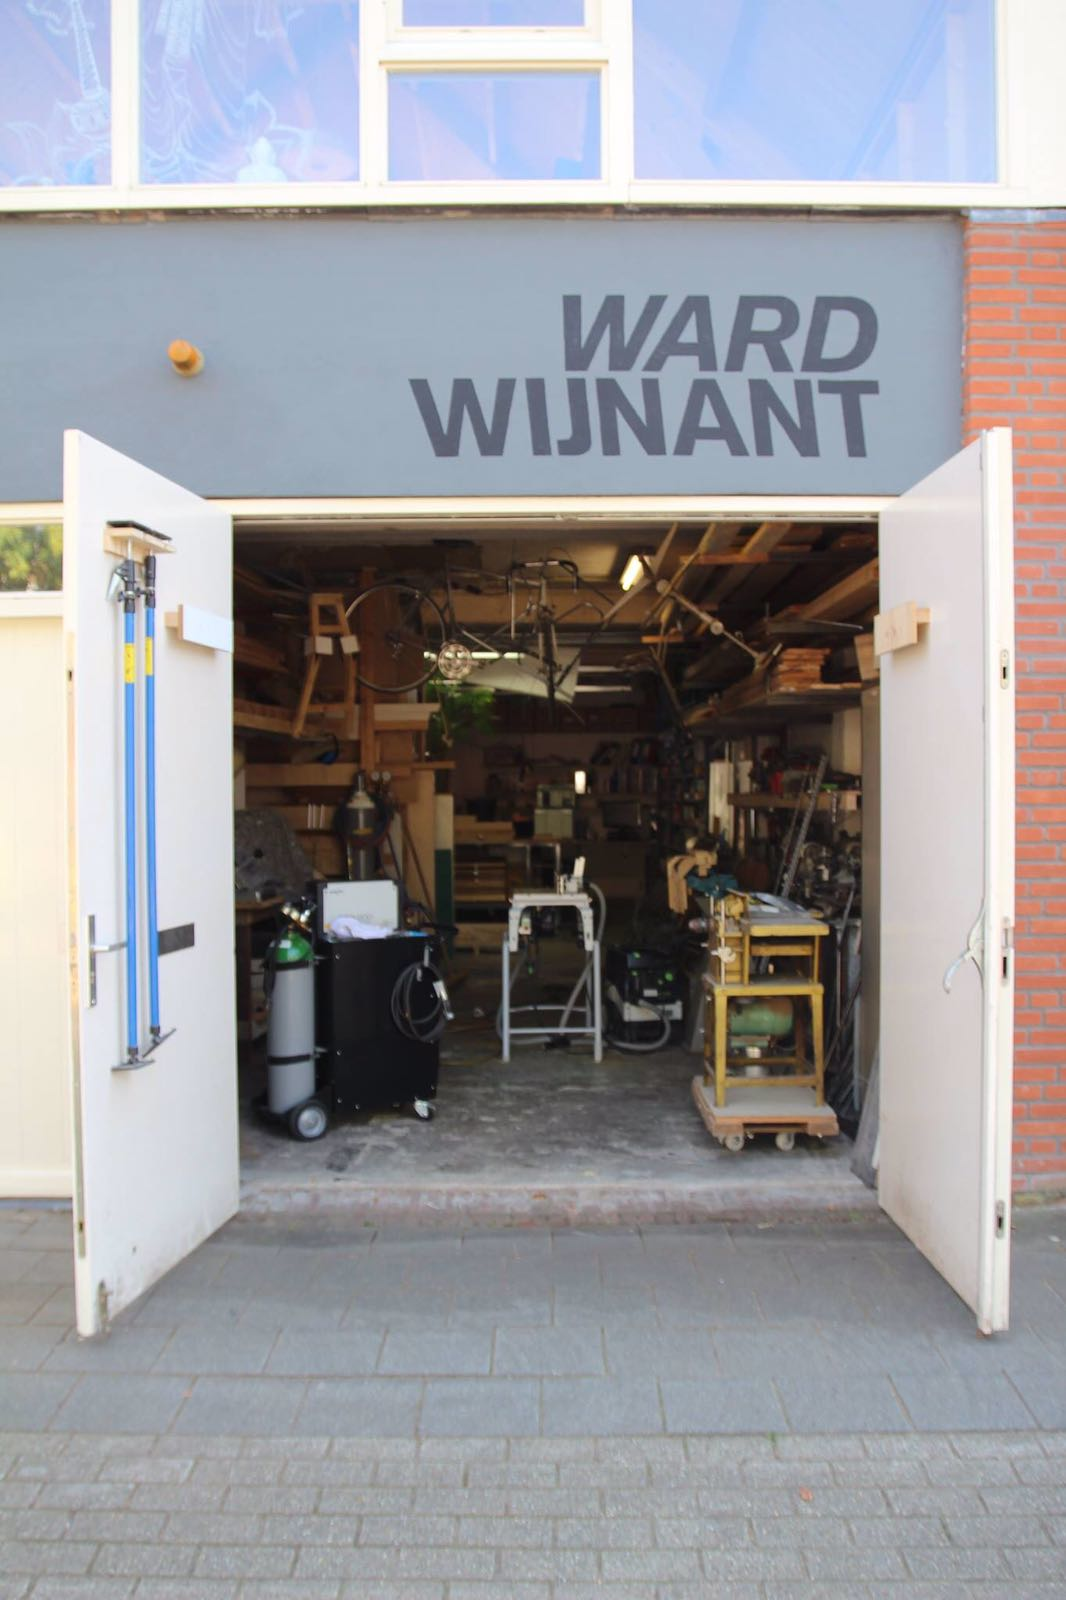 Studio of designer Ward Wijnant